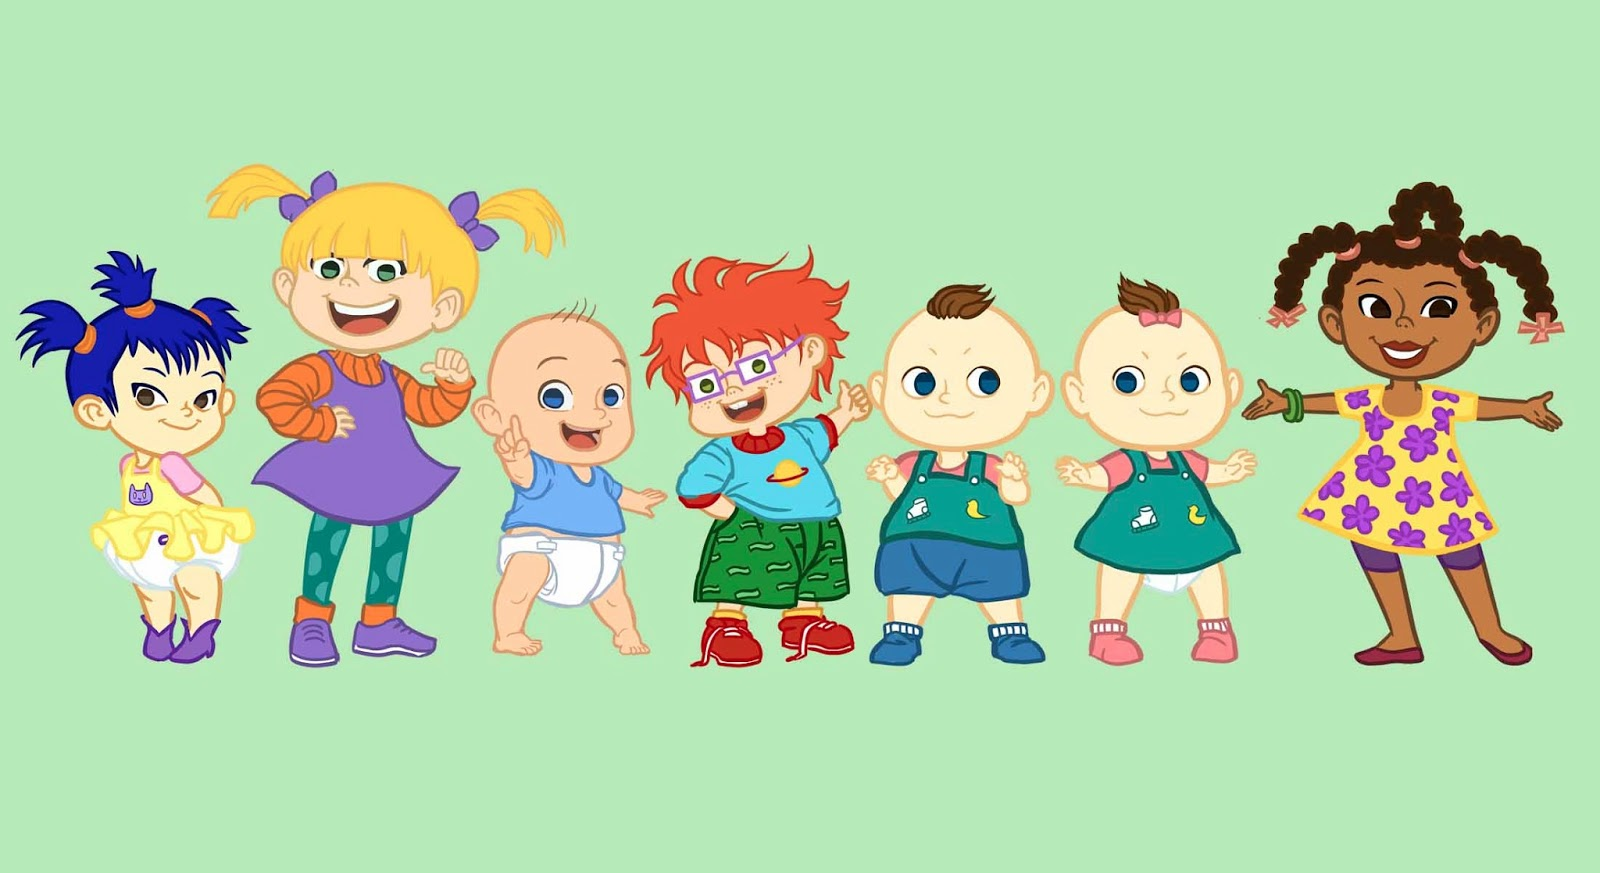 Rugrats Characters And Pictures Related Keywords - Rugrats ...